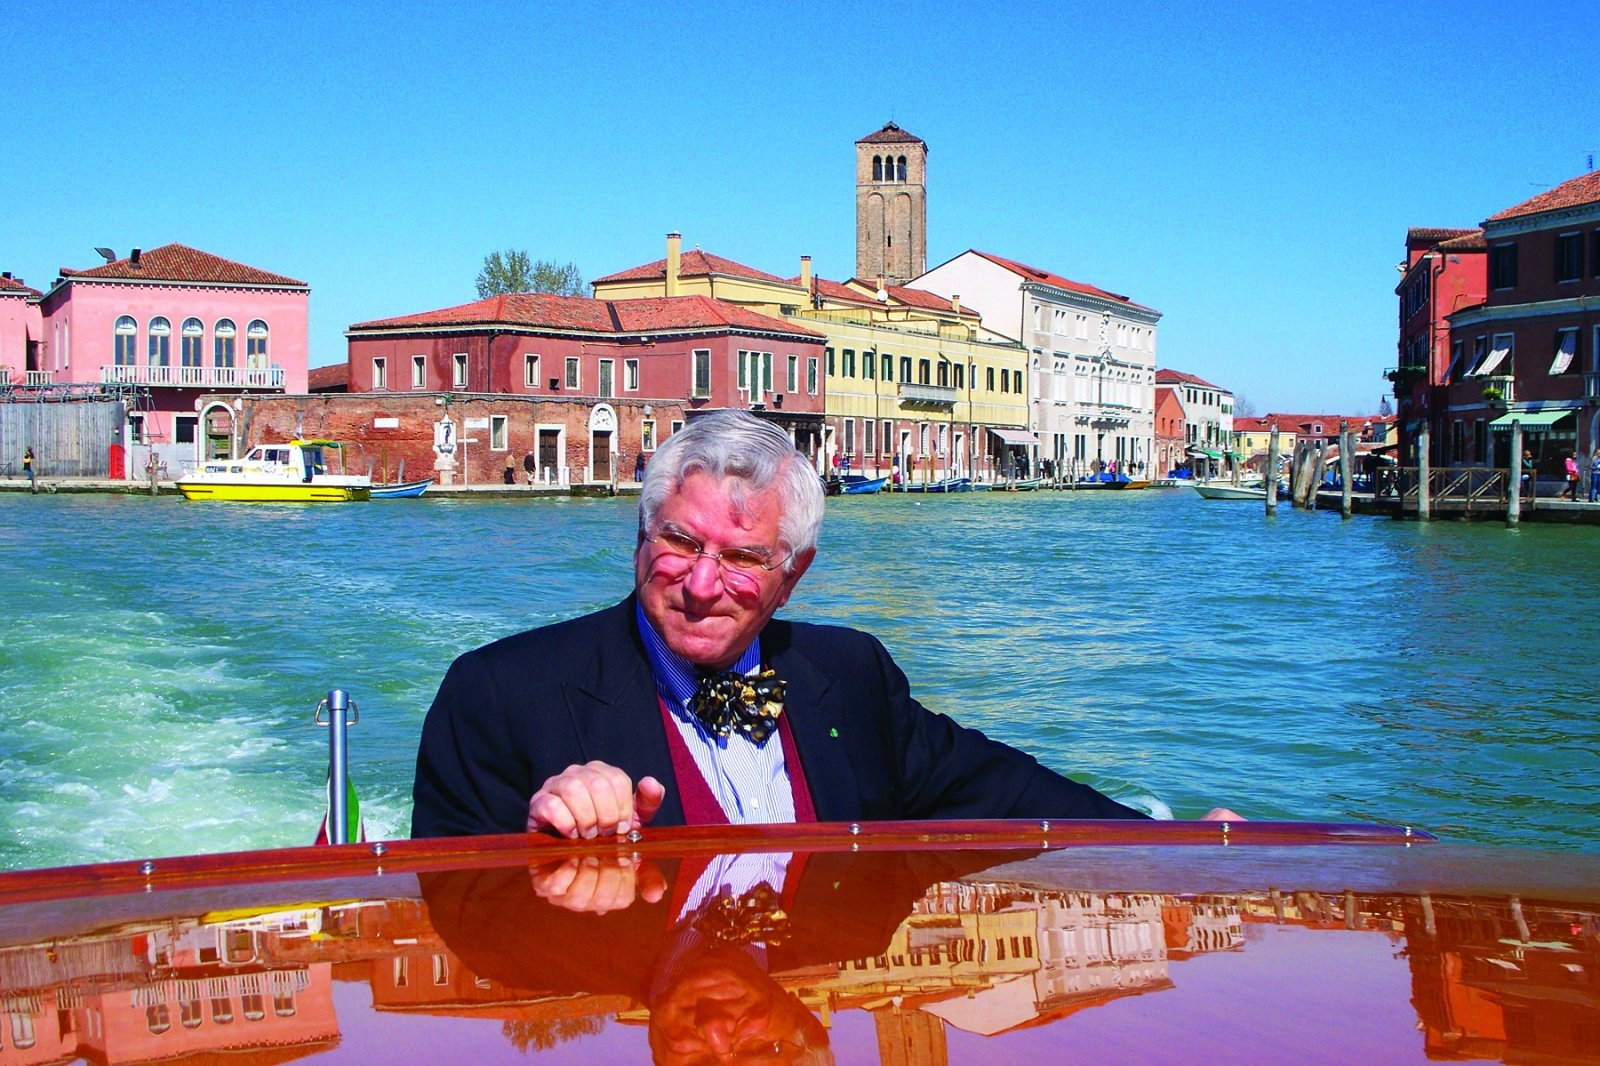 Corti riding a taxi boat through Venice, Italy from the airport last March (Photo courtesy of Darrell Corti)